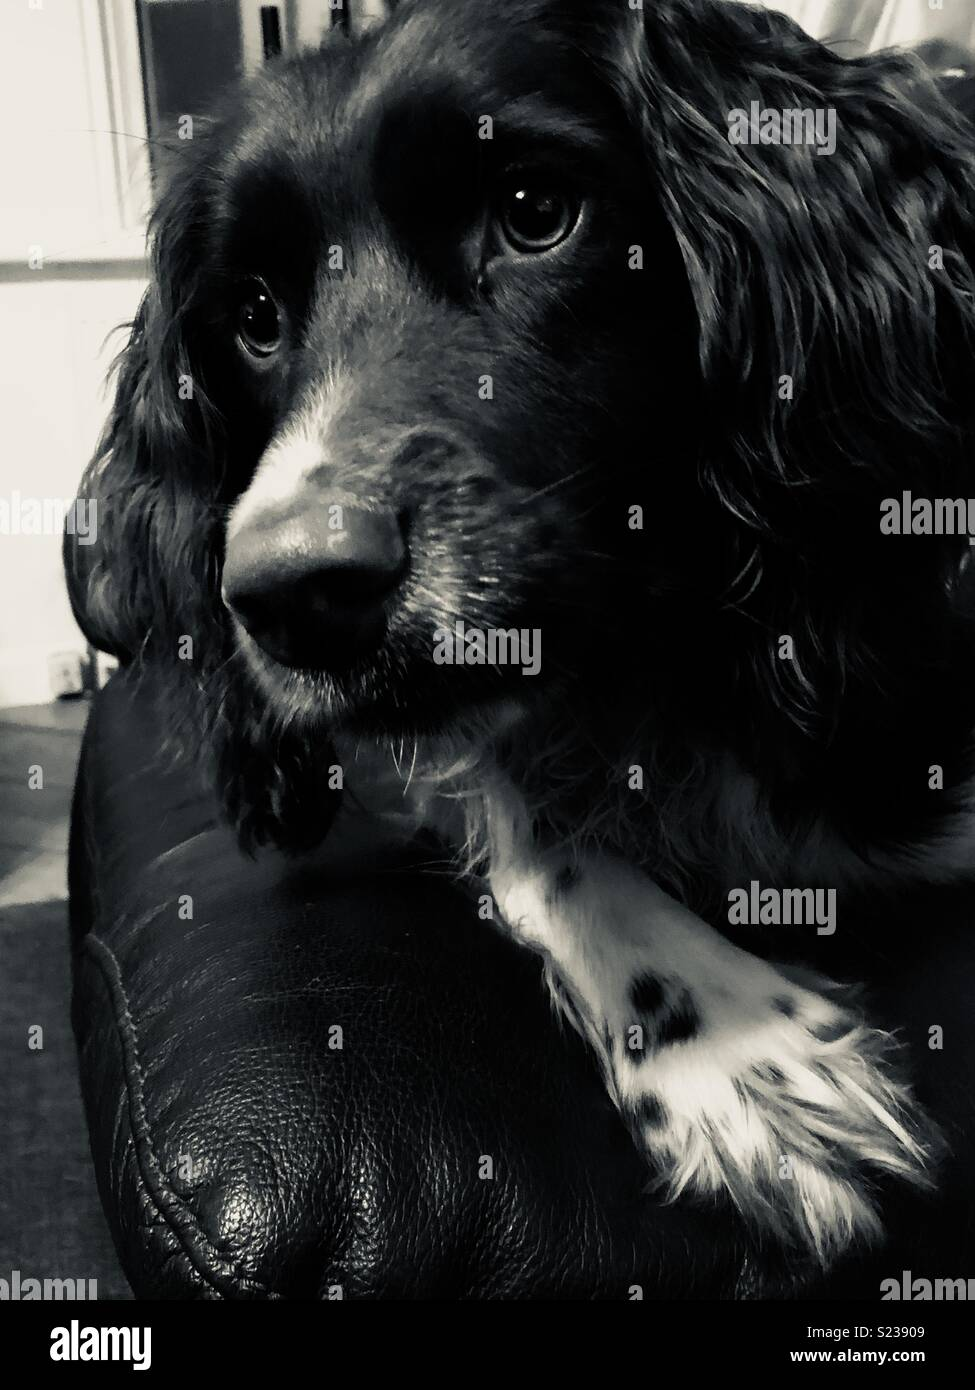 Springer spaniel dog looking sultry and brooding in black and white. - Stock Image